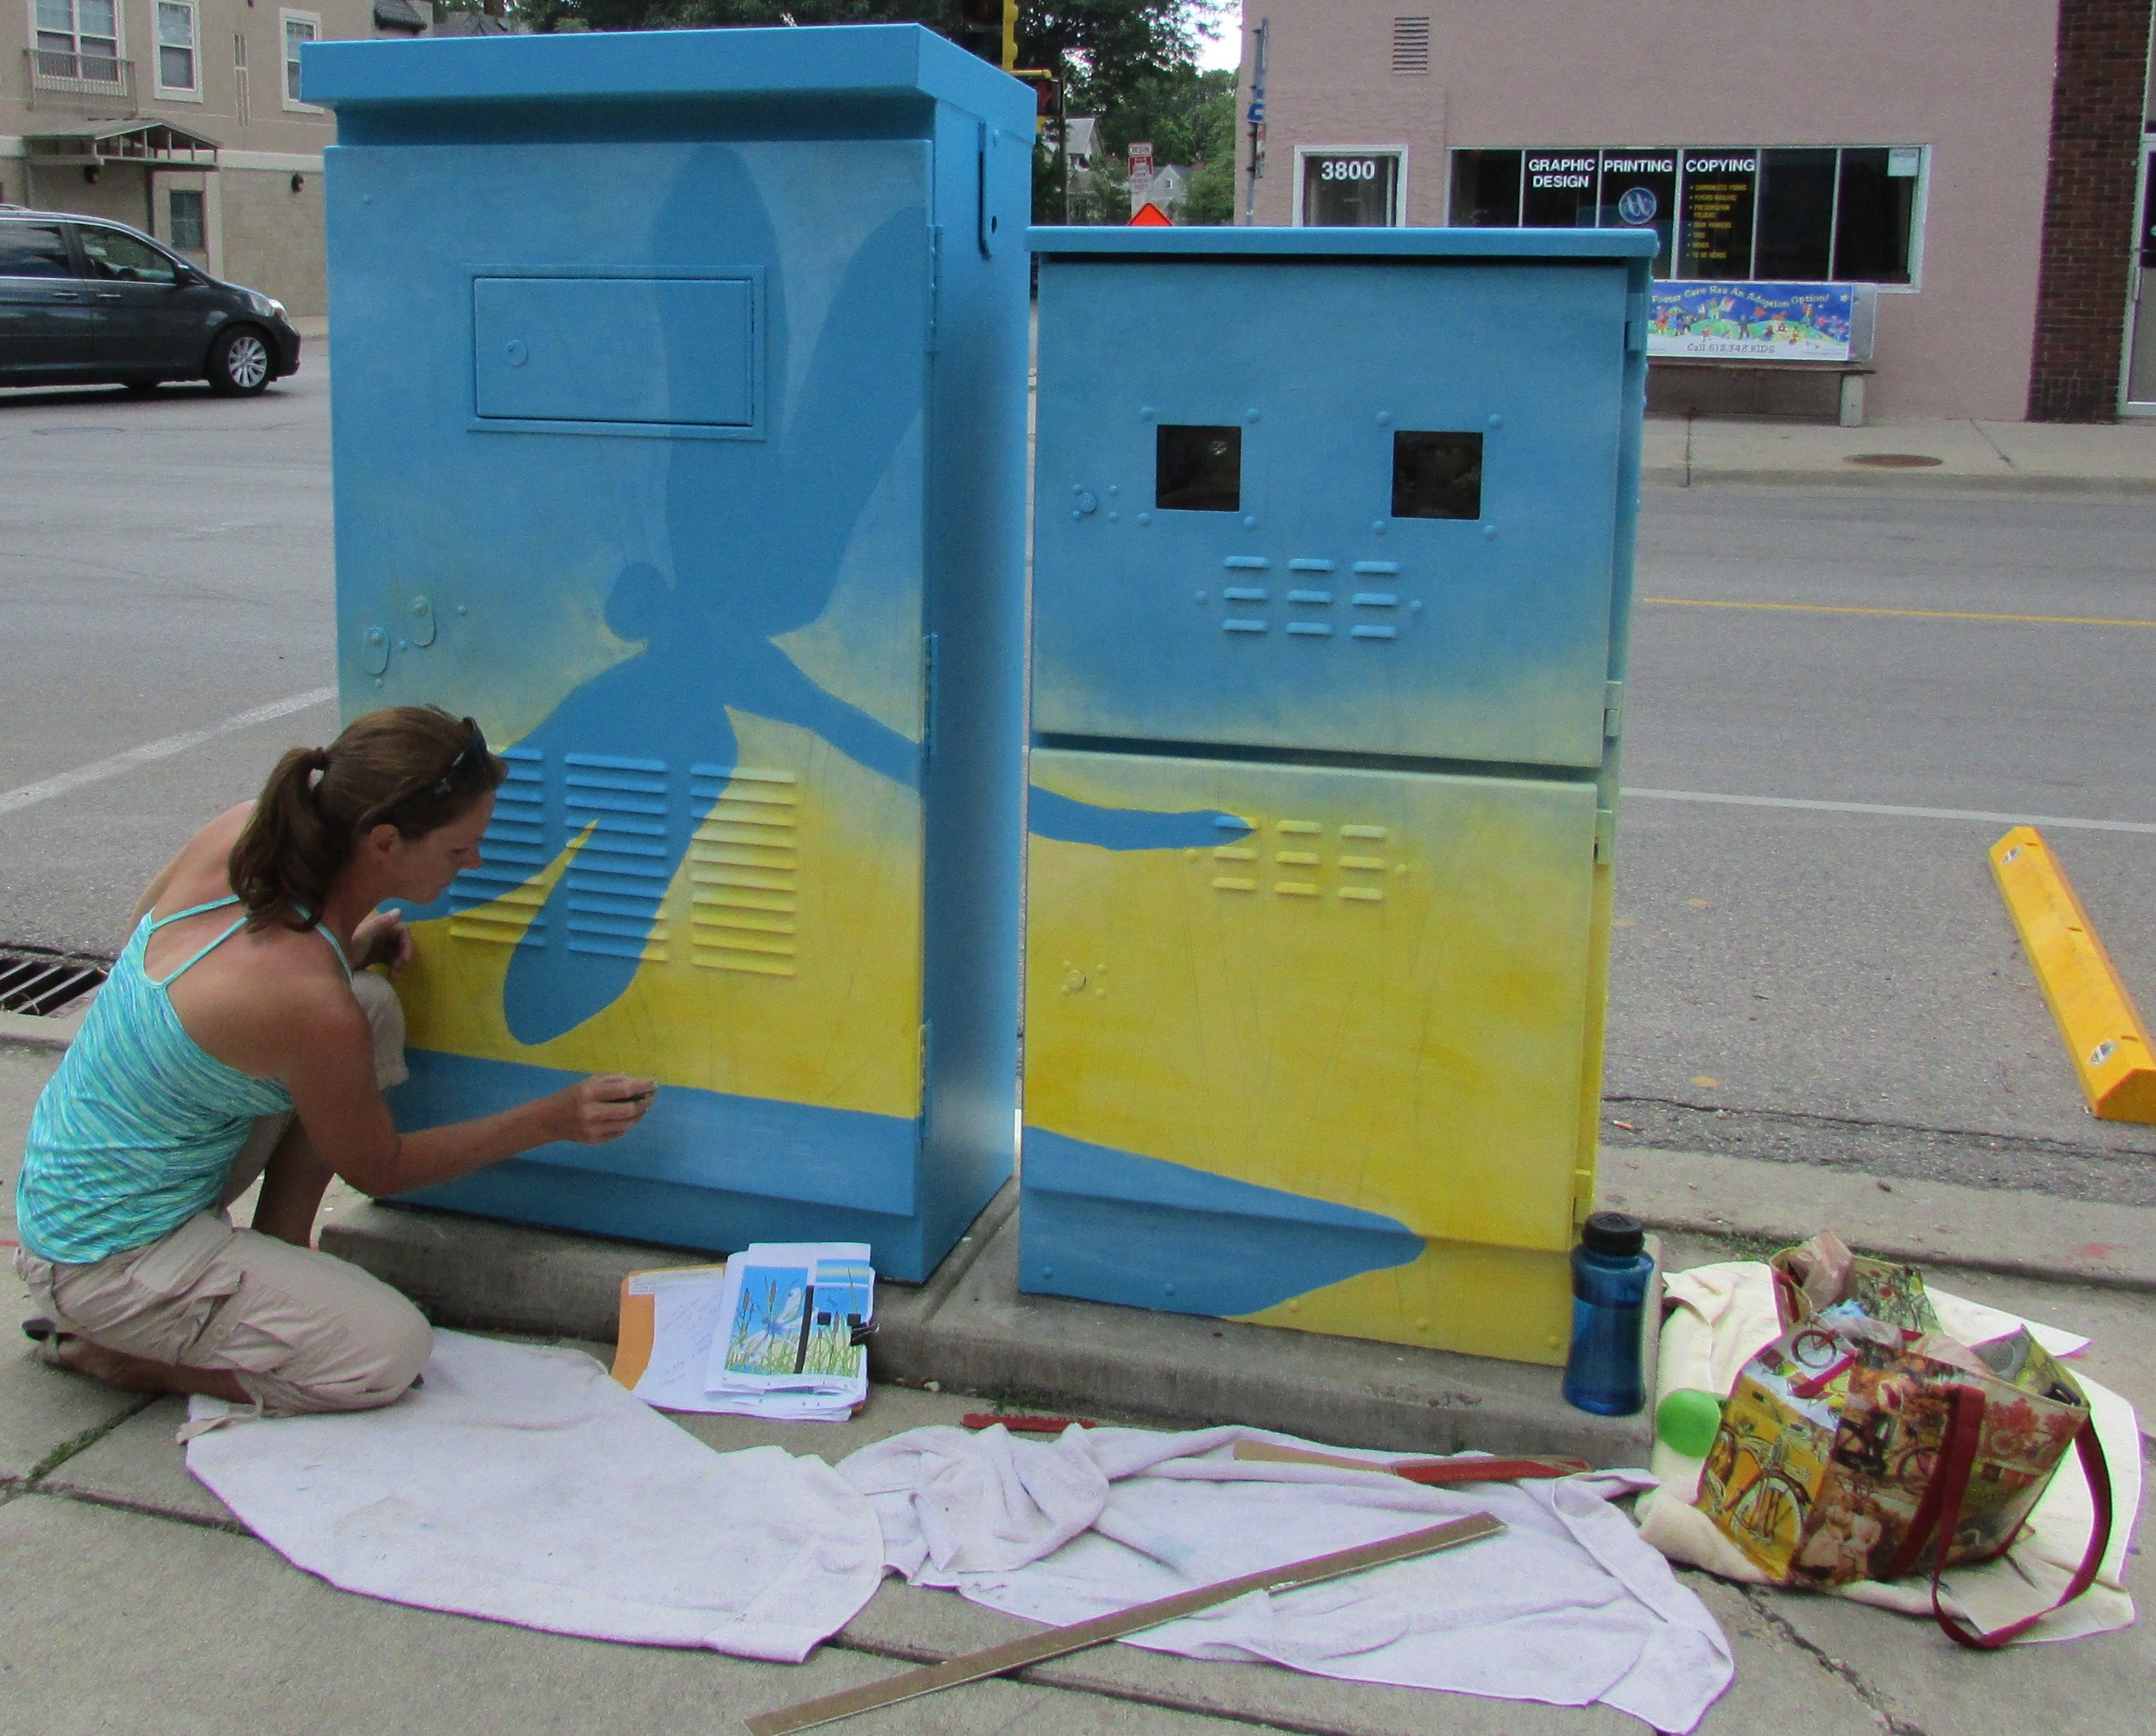 Julie Bode painting her box at the corner of 28th Ave. and 38th St.